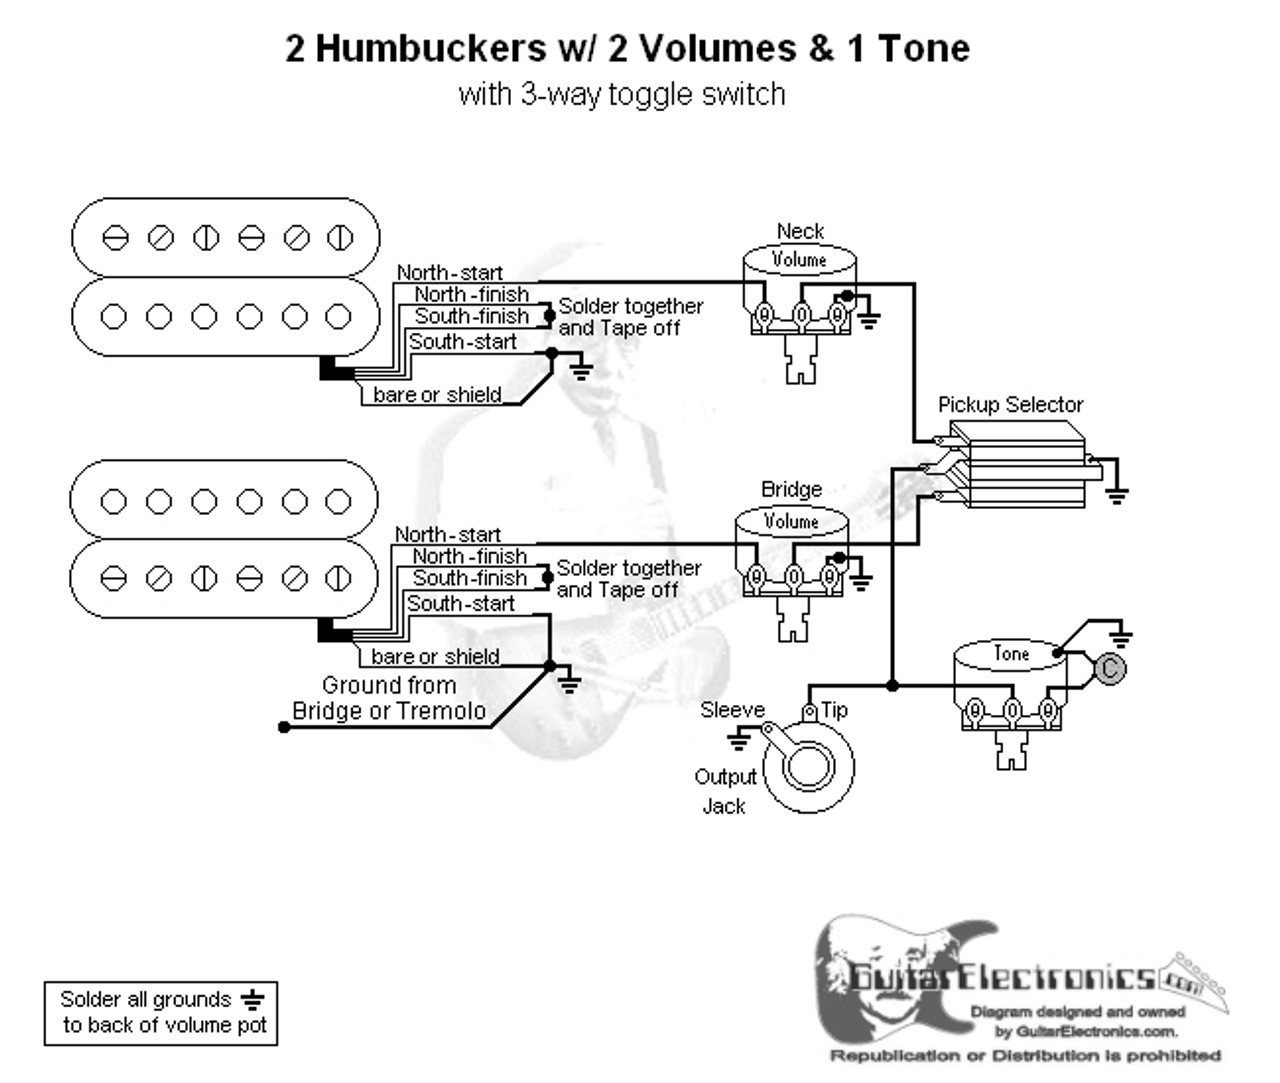 small resolution of electric guitar diagram wire 2 humbucker 1 tones 2 volumes wiring wiring diagram 2 pickup 3 way switch one volume